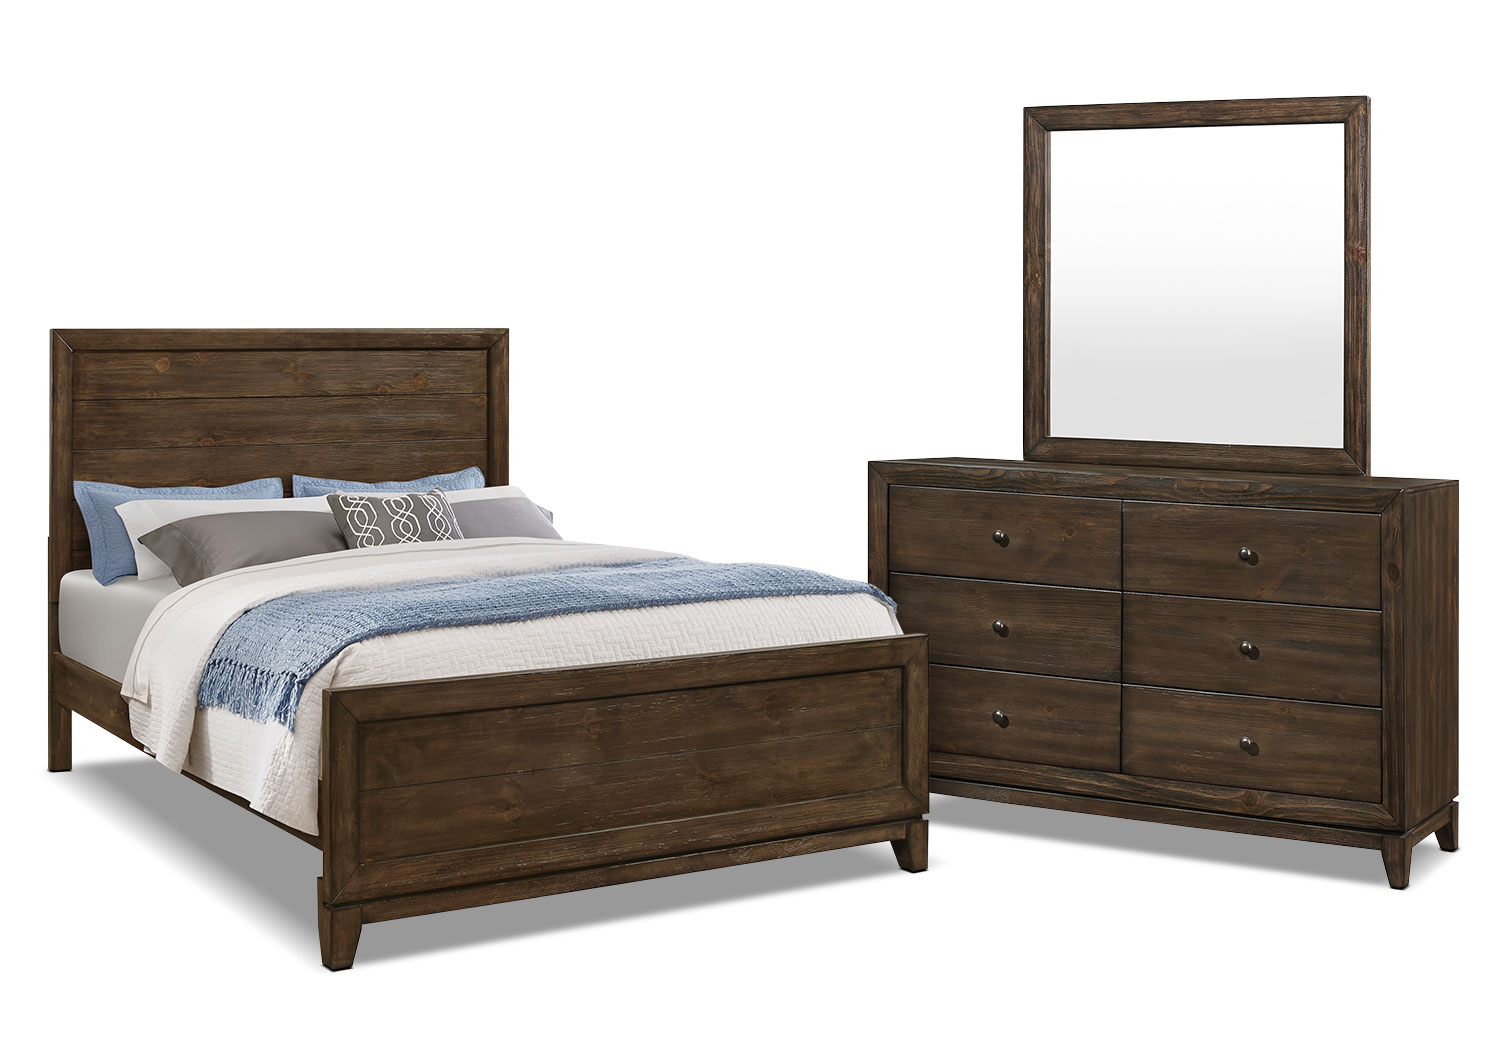 Bedroom Furniture - Tacoma 5-Piece Queen Bedroom Package